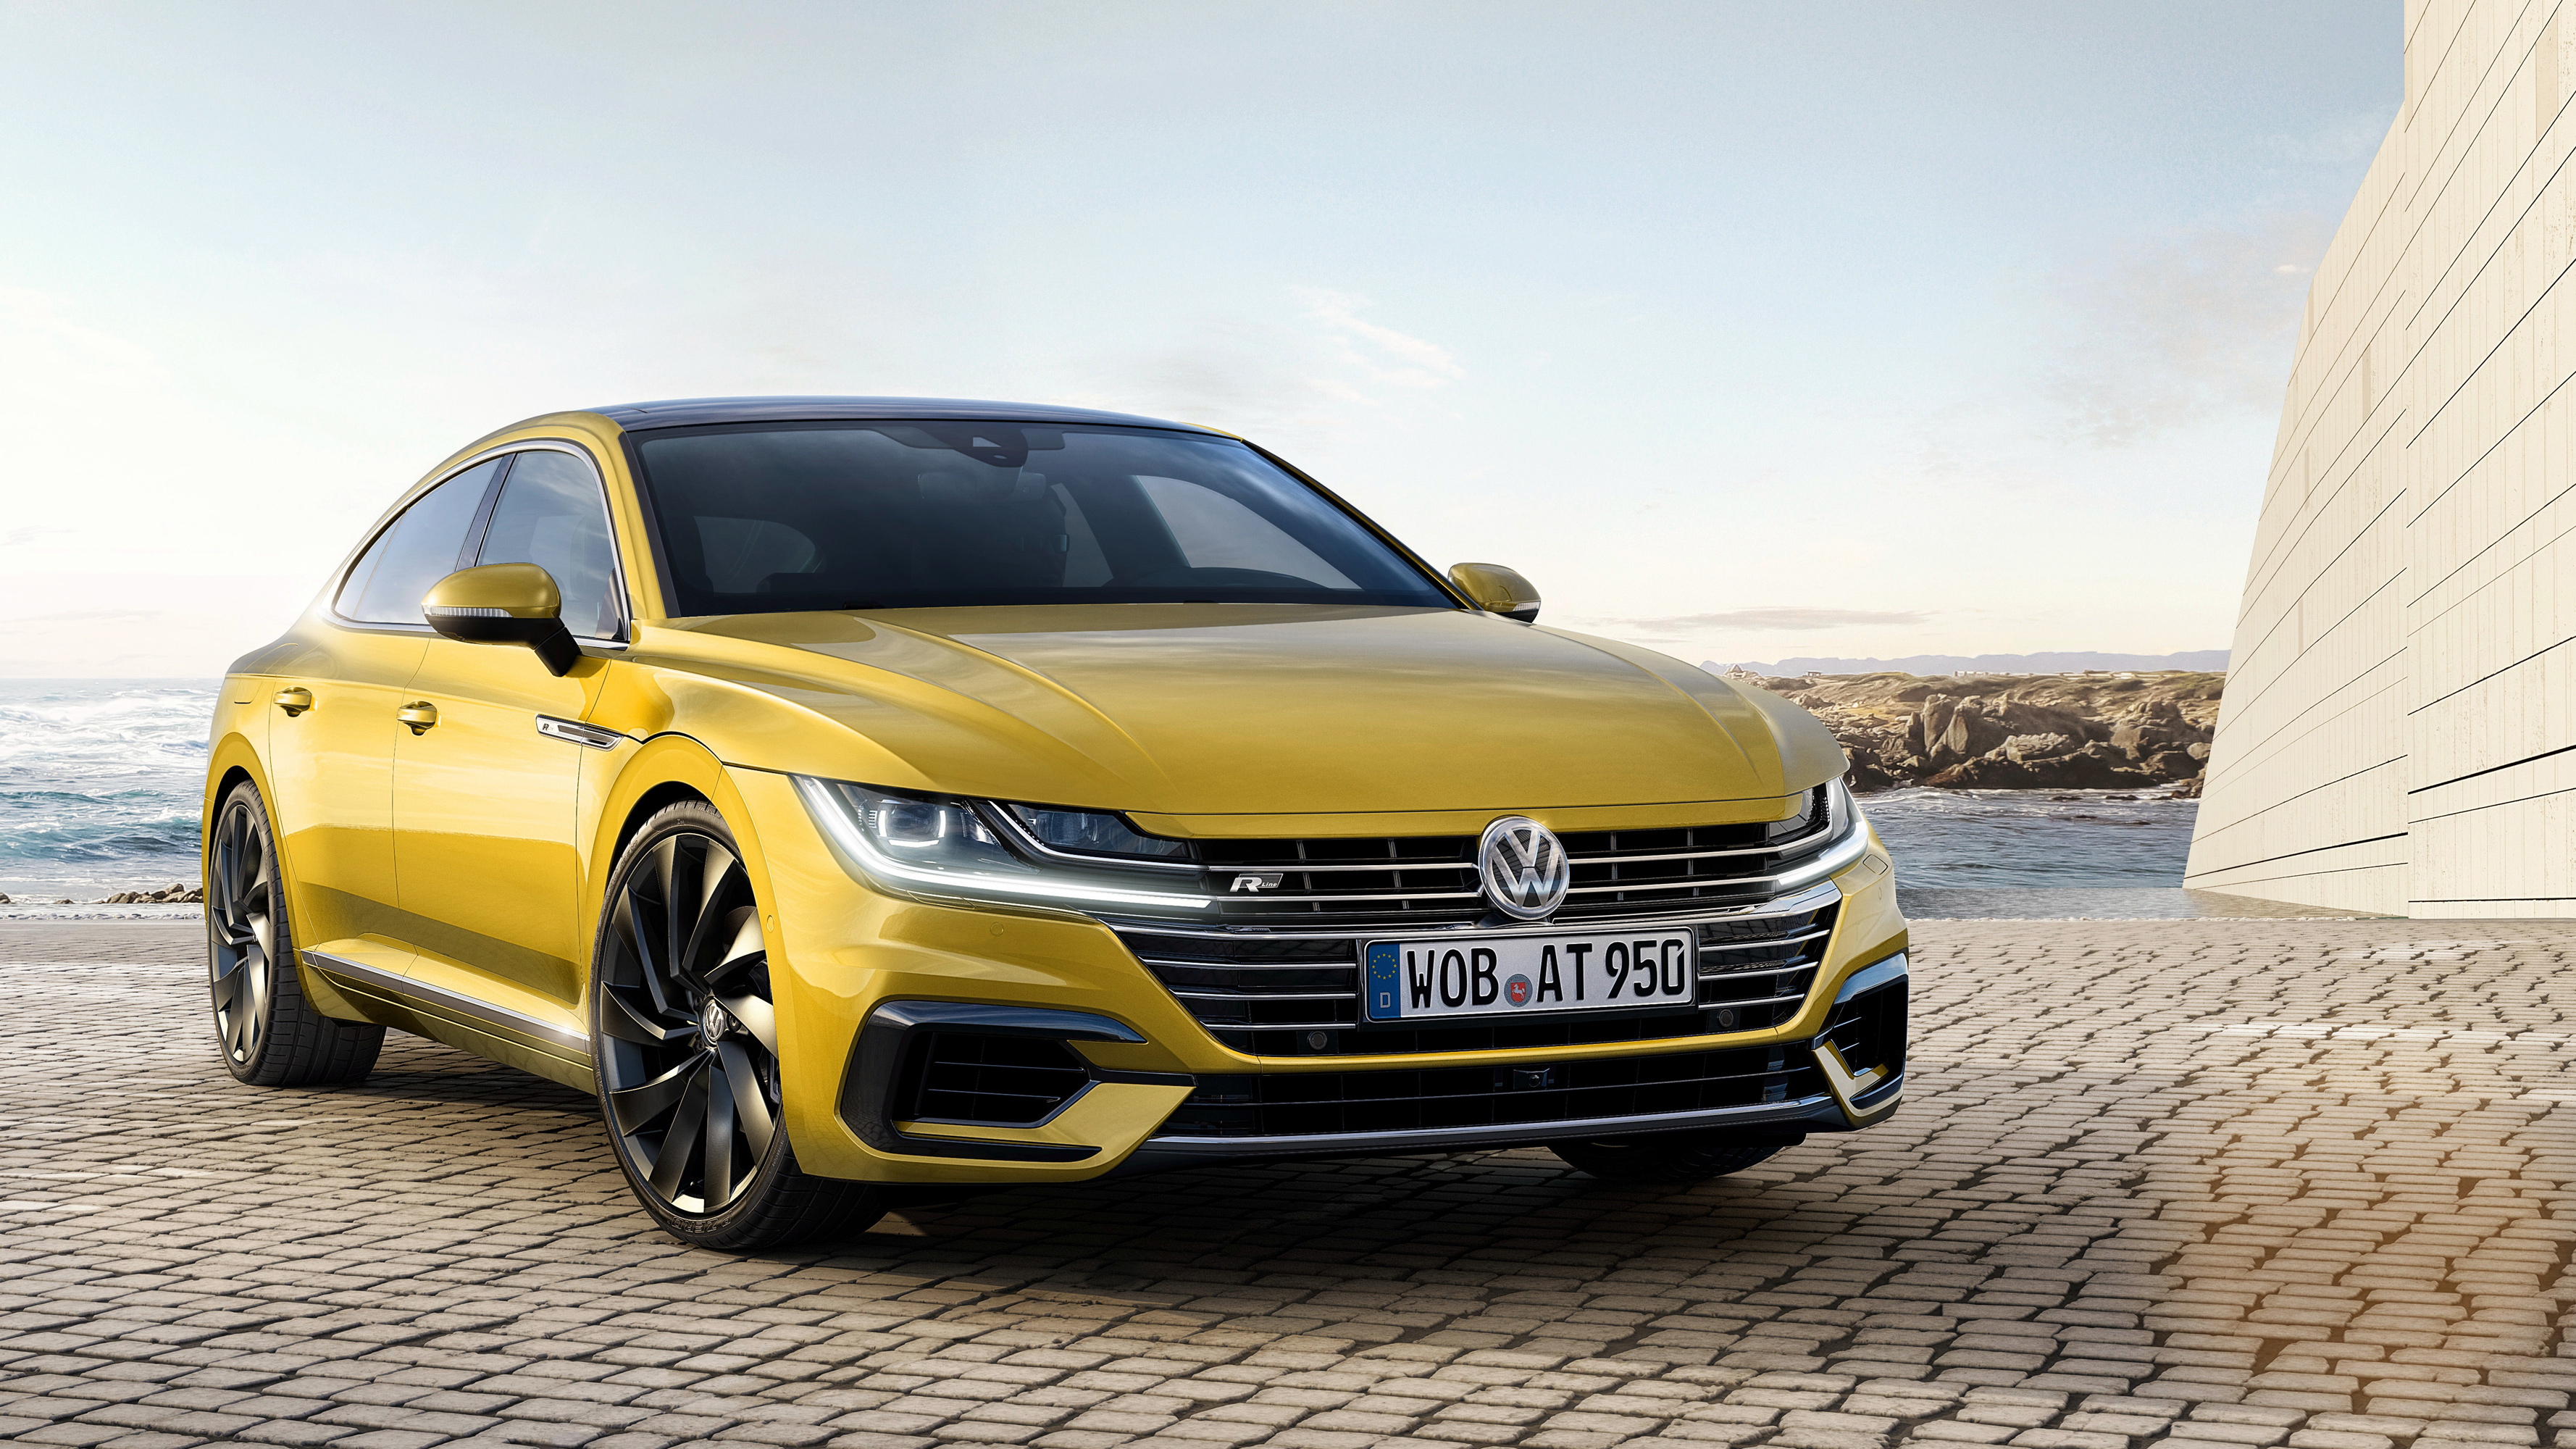 2017 Volkswagen Arteon R Line Wallpaper | HD Car Wallpapers